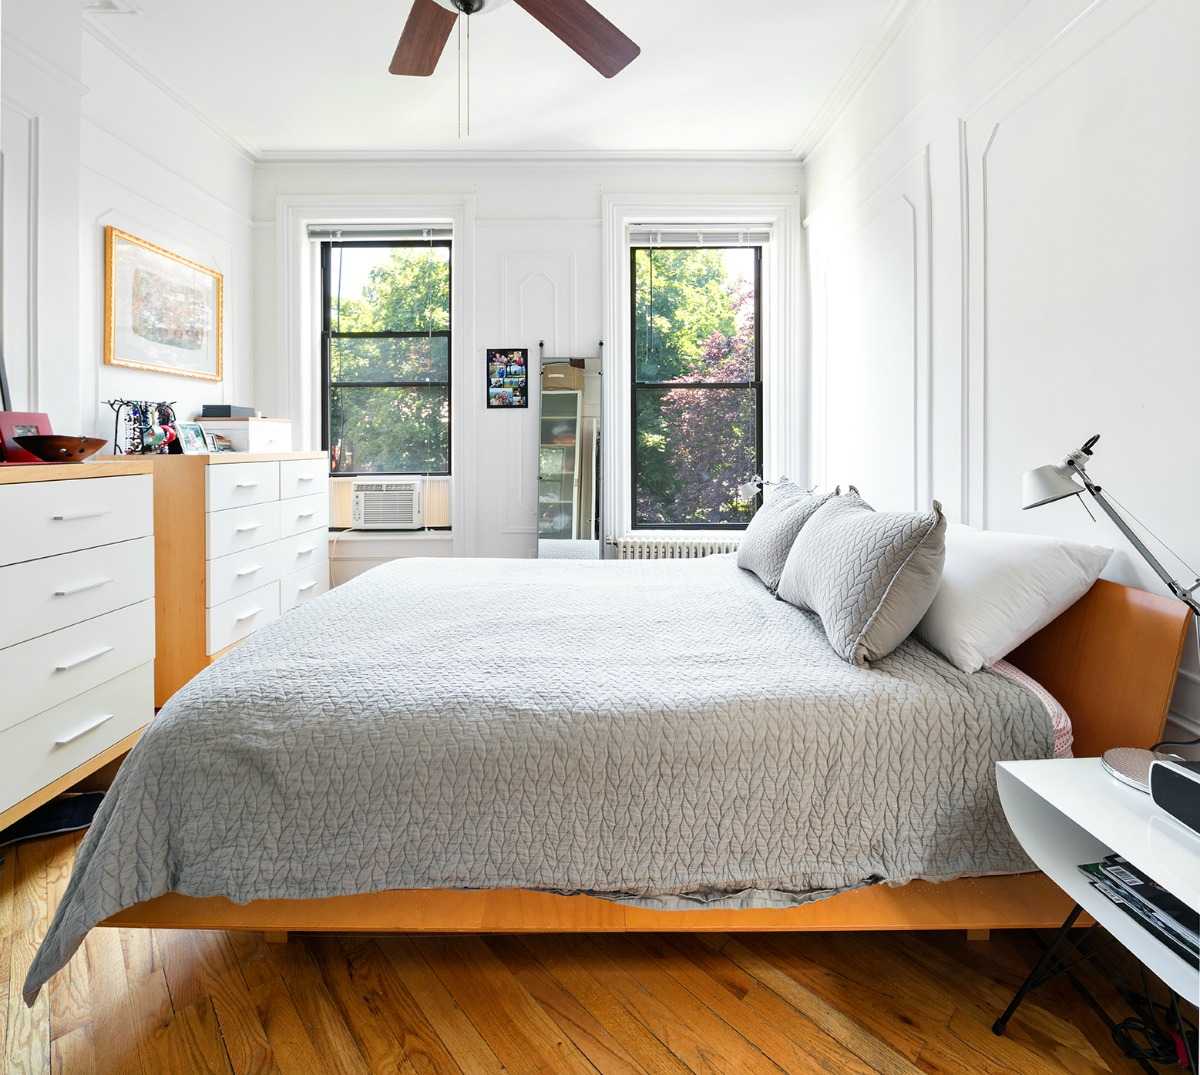 215 East 13th Street , cool listings, park slope, south slope, townhouses, duplexes, rentals, brooklyn duplex for rent, brooklyn,